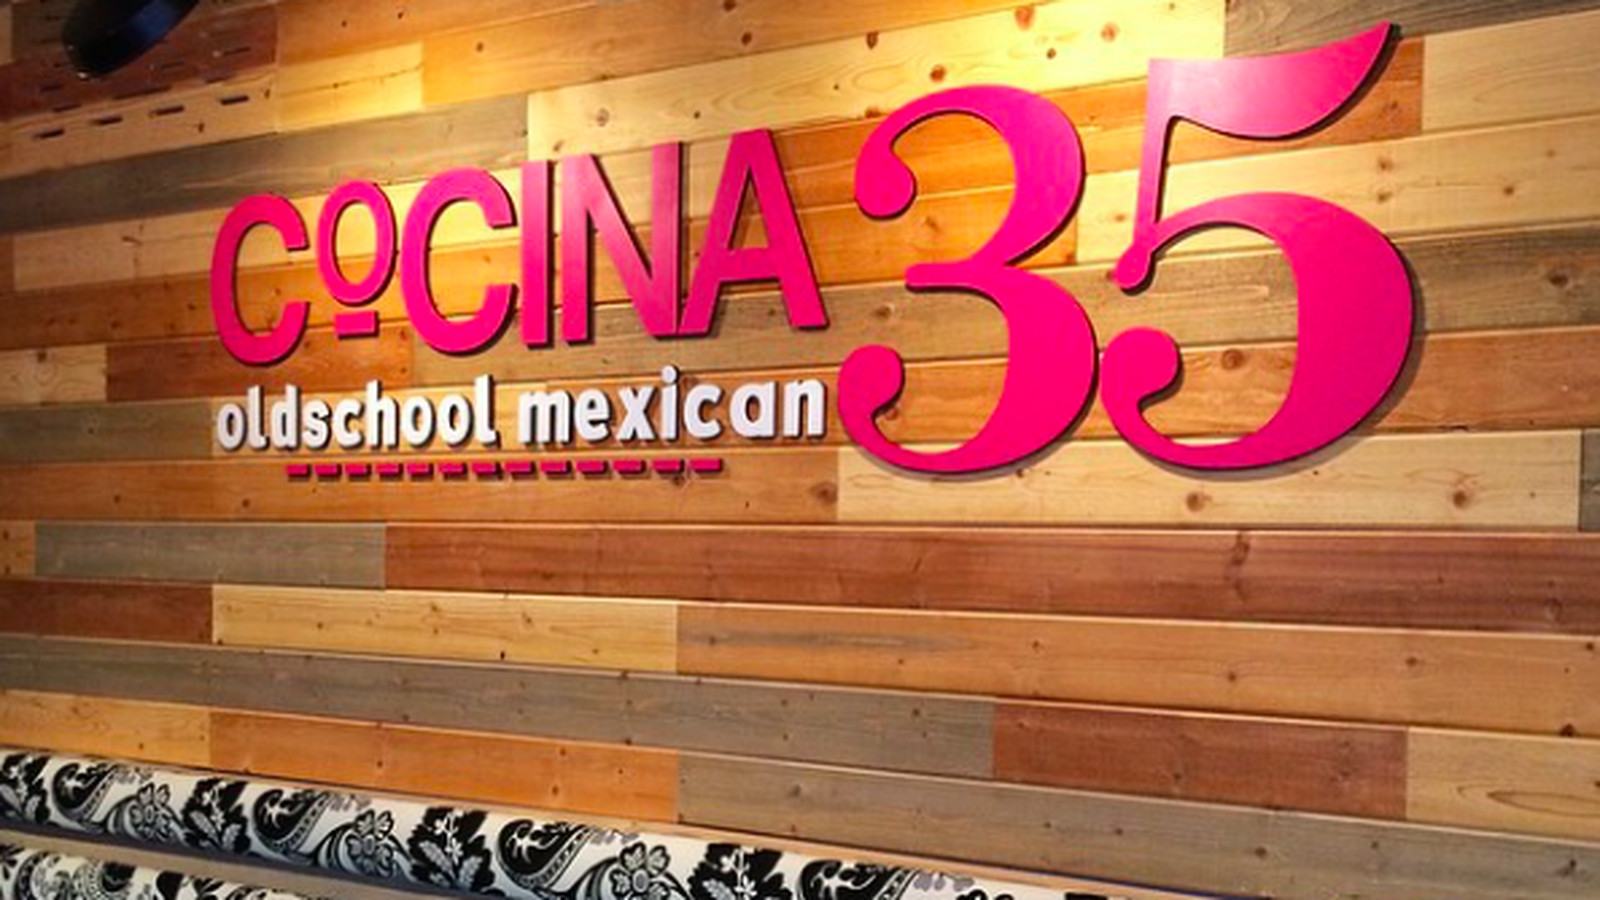 Fast Casual Old School Mexican Eatery Debuts Downtown